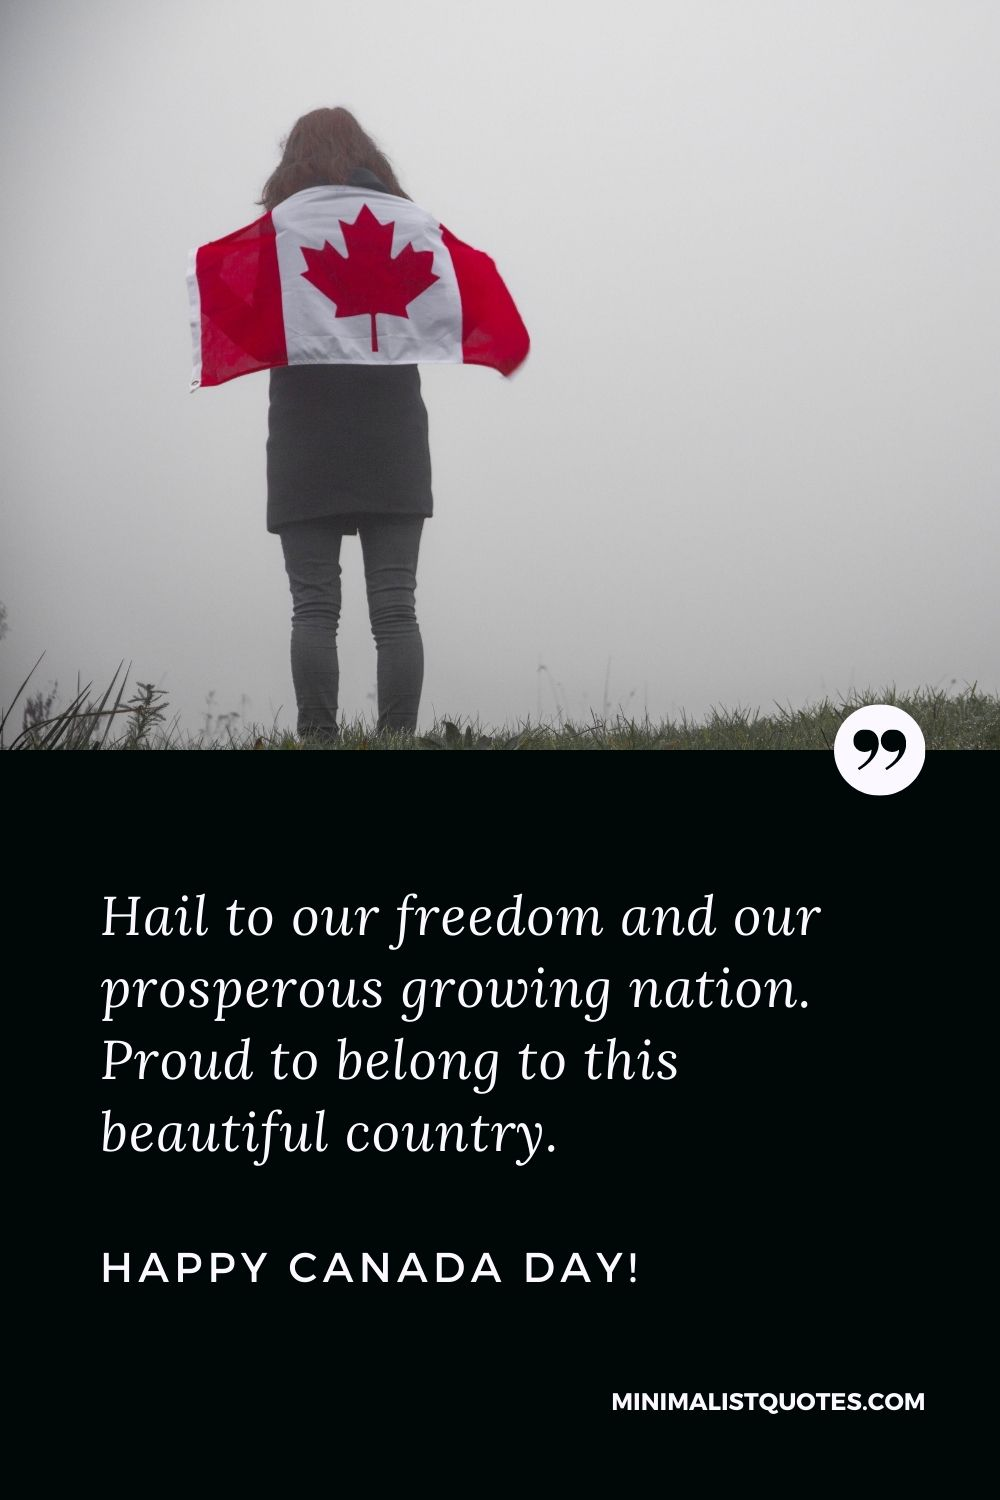 Happy Canada day greetings: Hail to our freedom and our prosperous growing nation. Proud to belong to this beautiful country. Happy Canada Day!